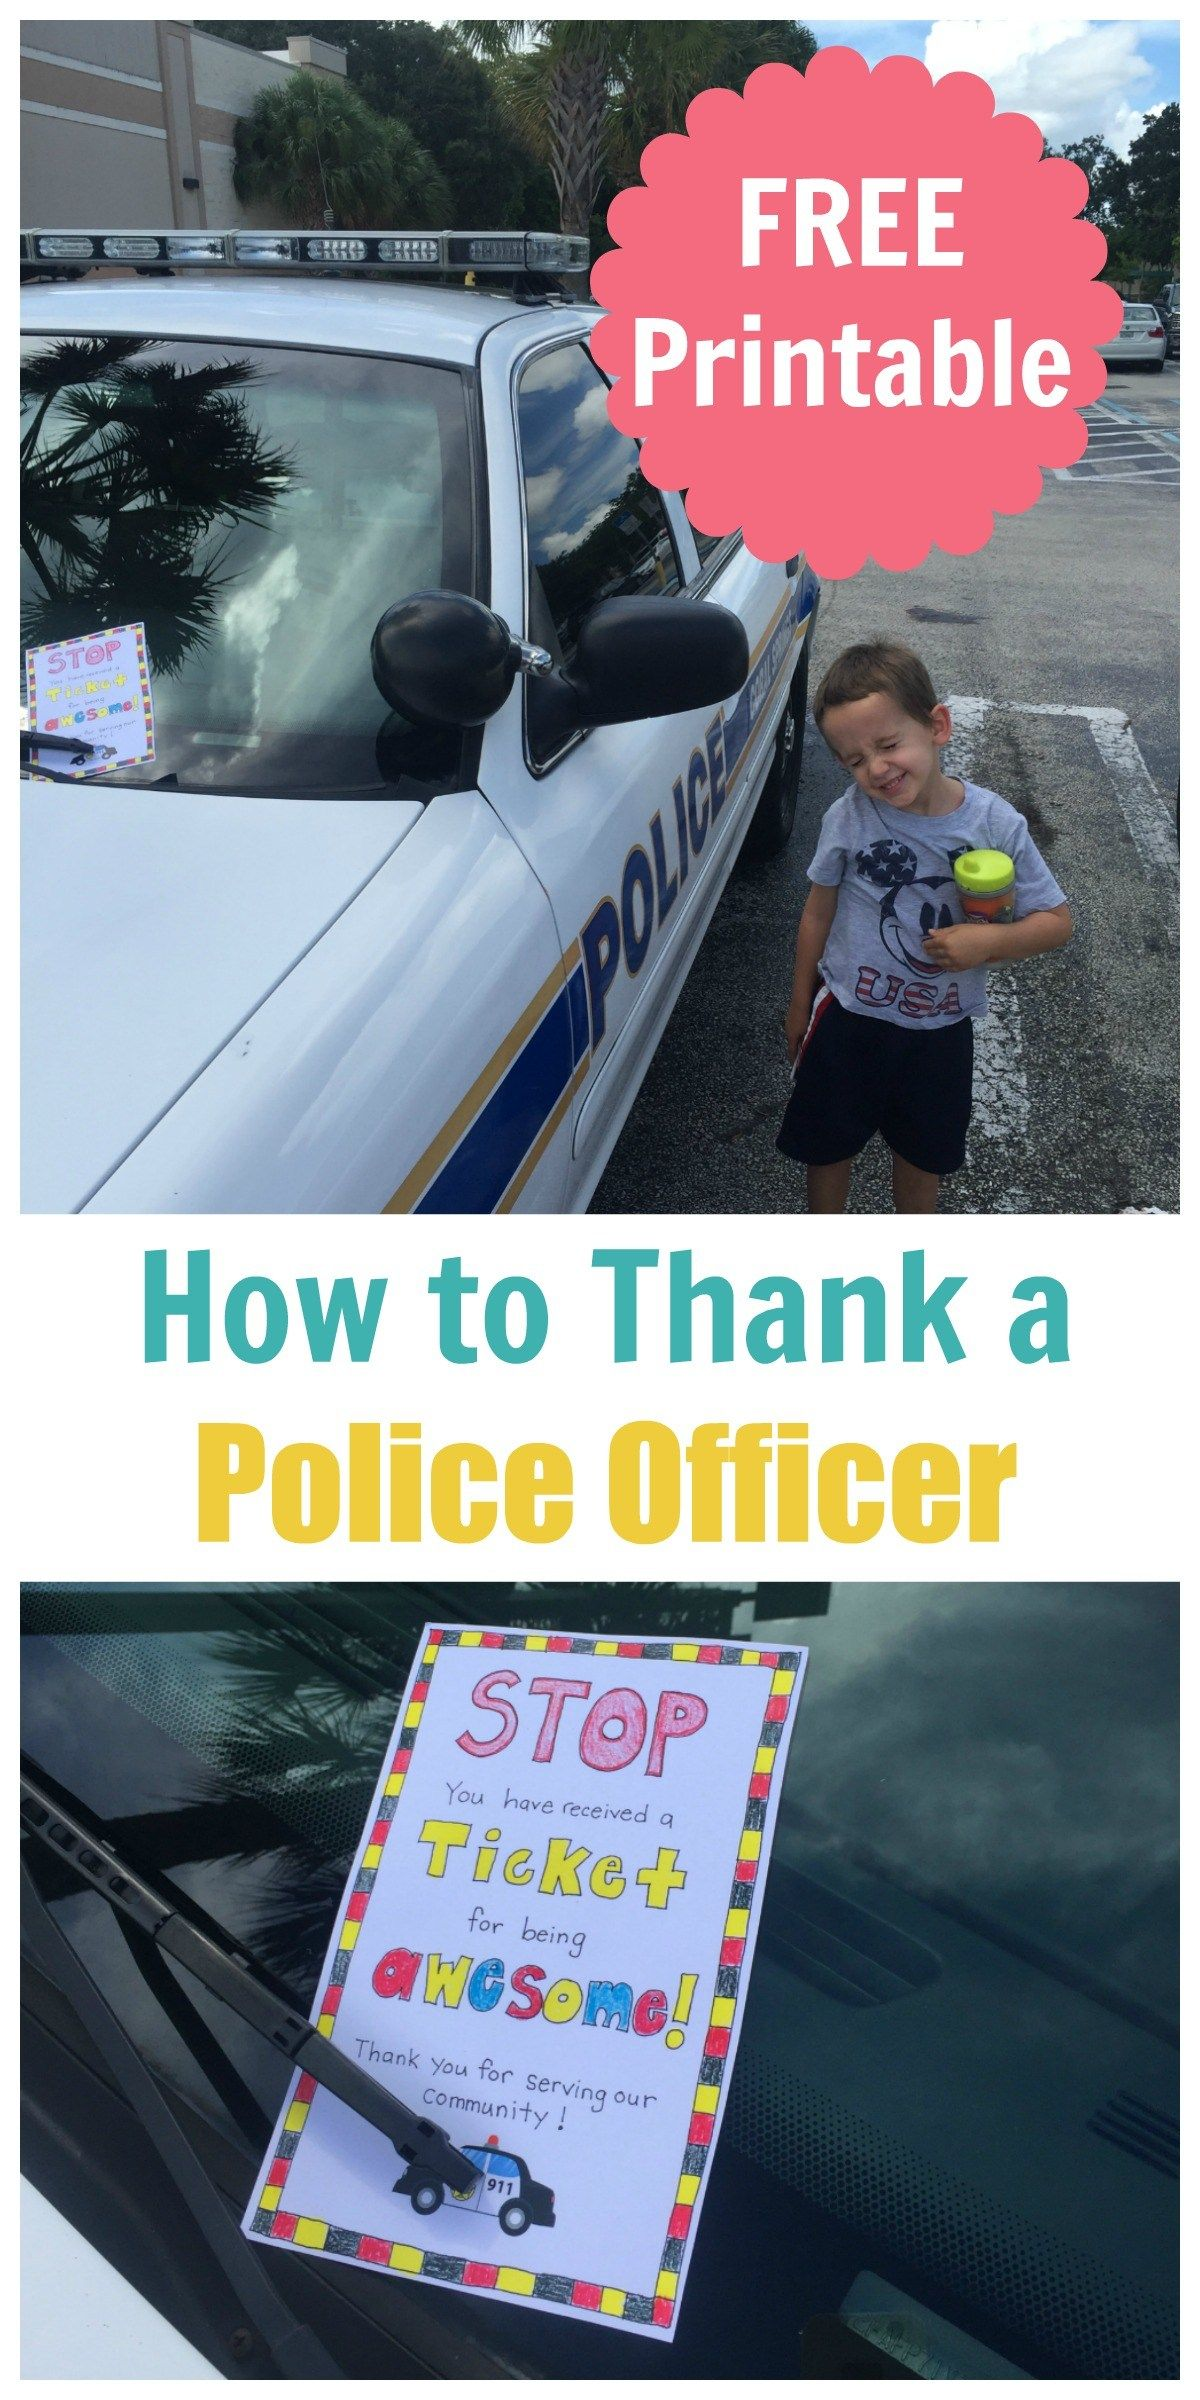 How to thank a police officer free printable free printable